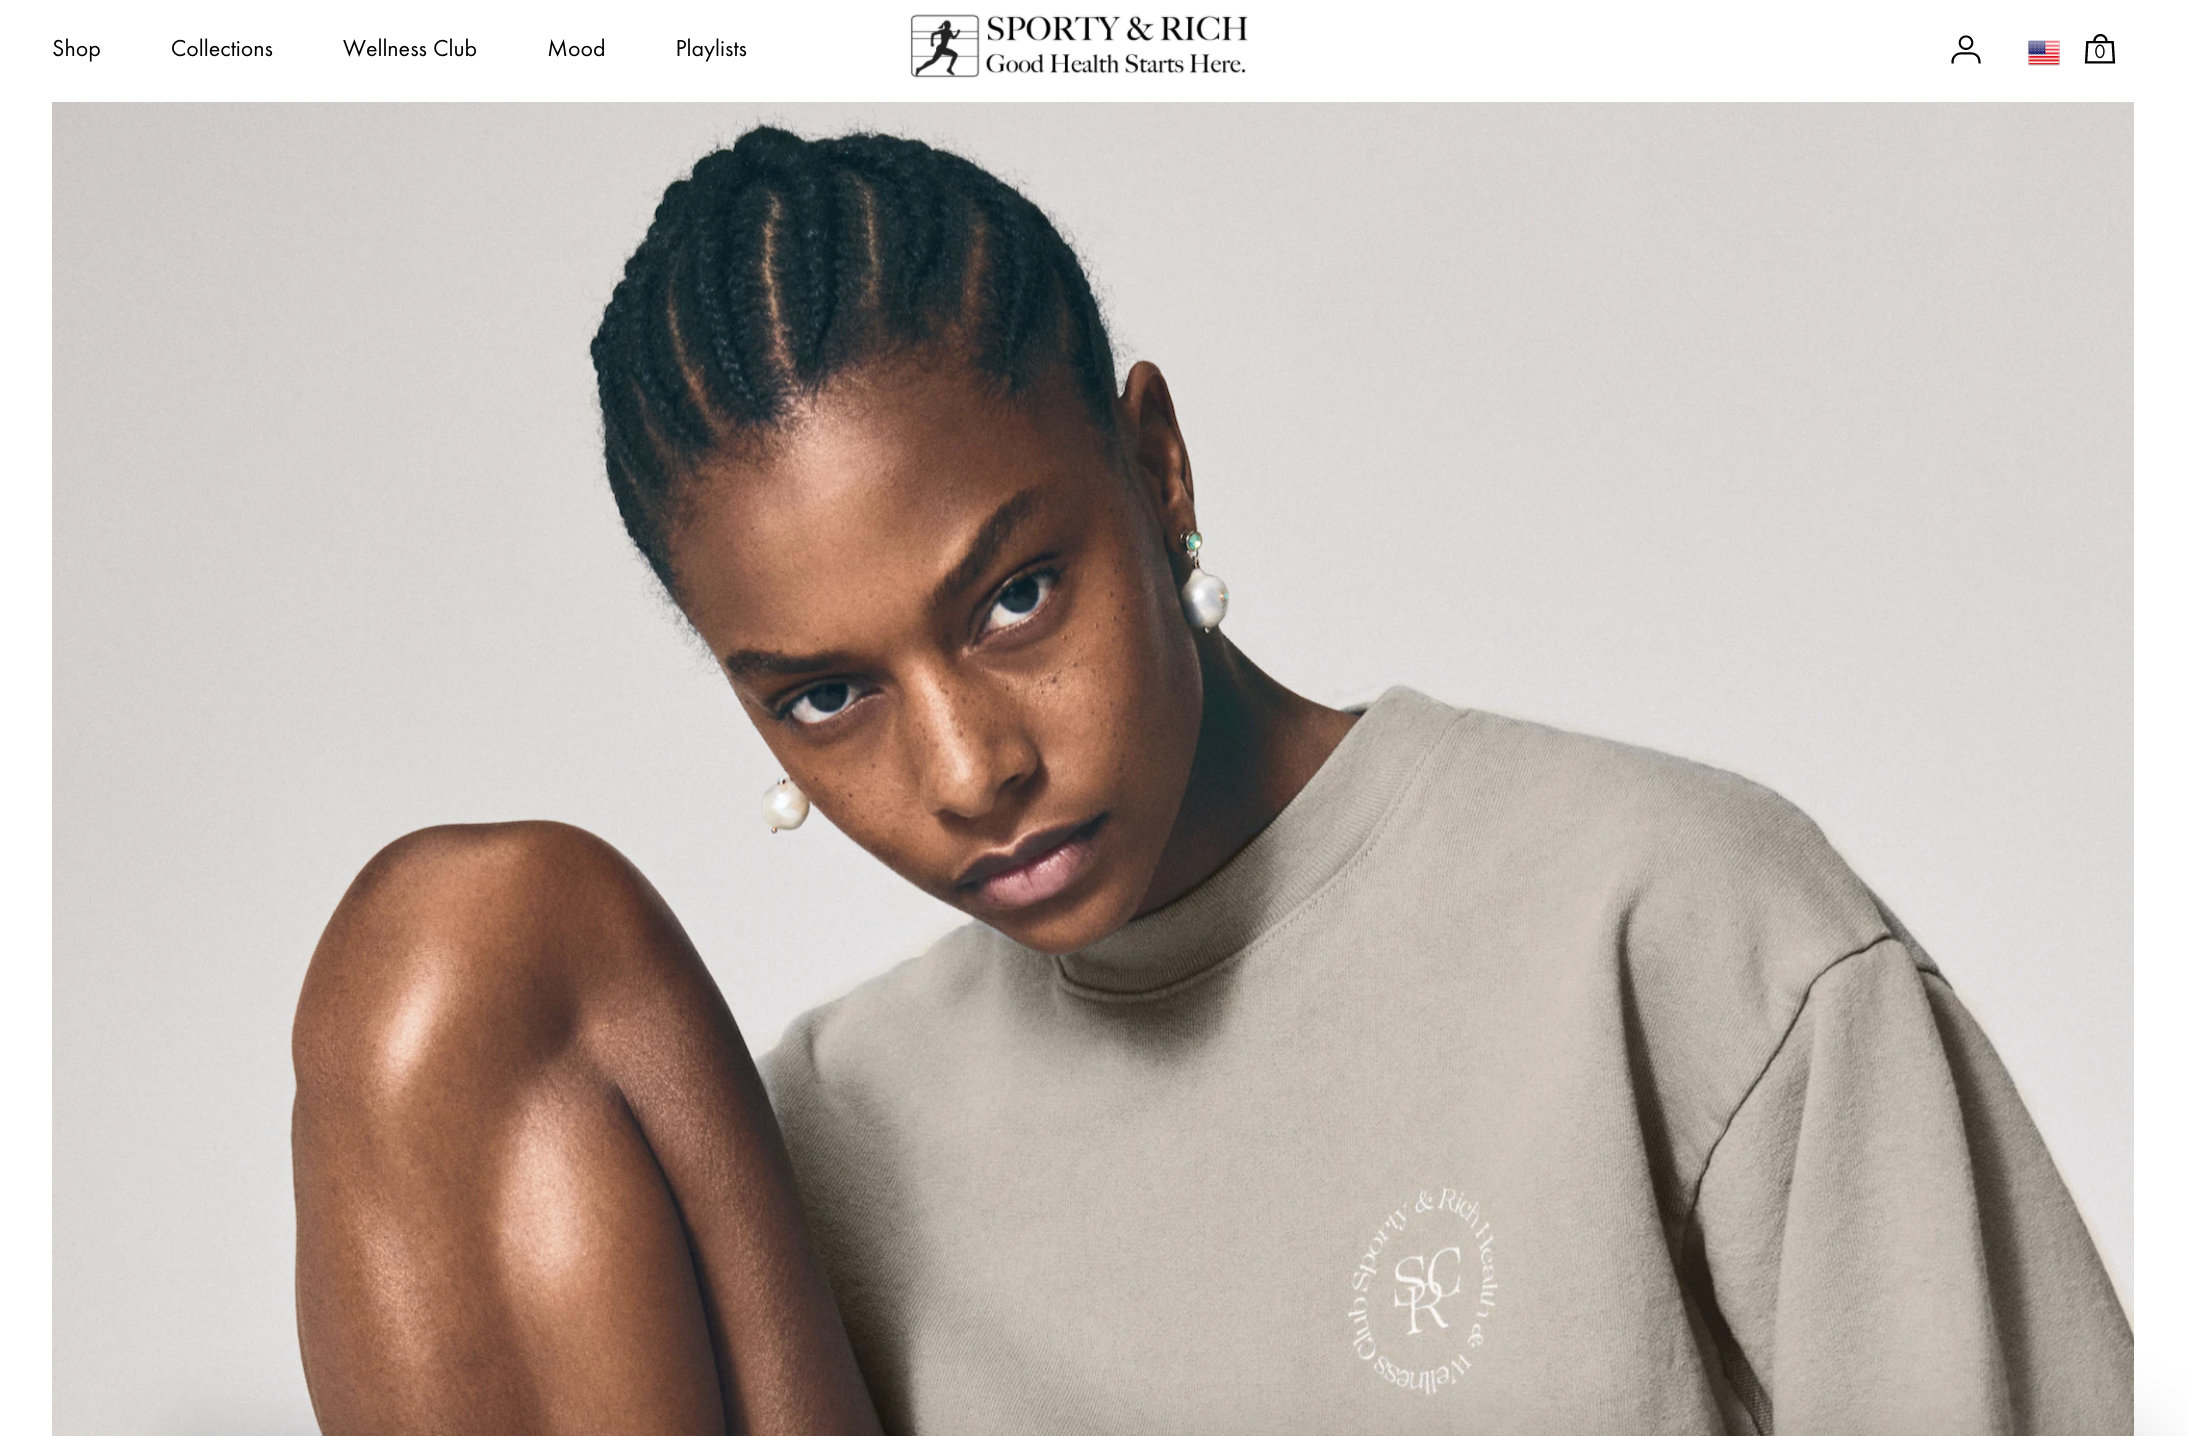 sporty and rich fashion shopify website design